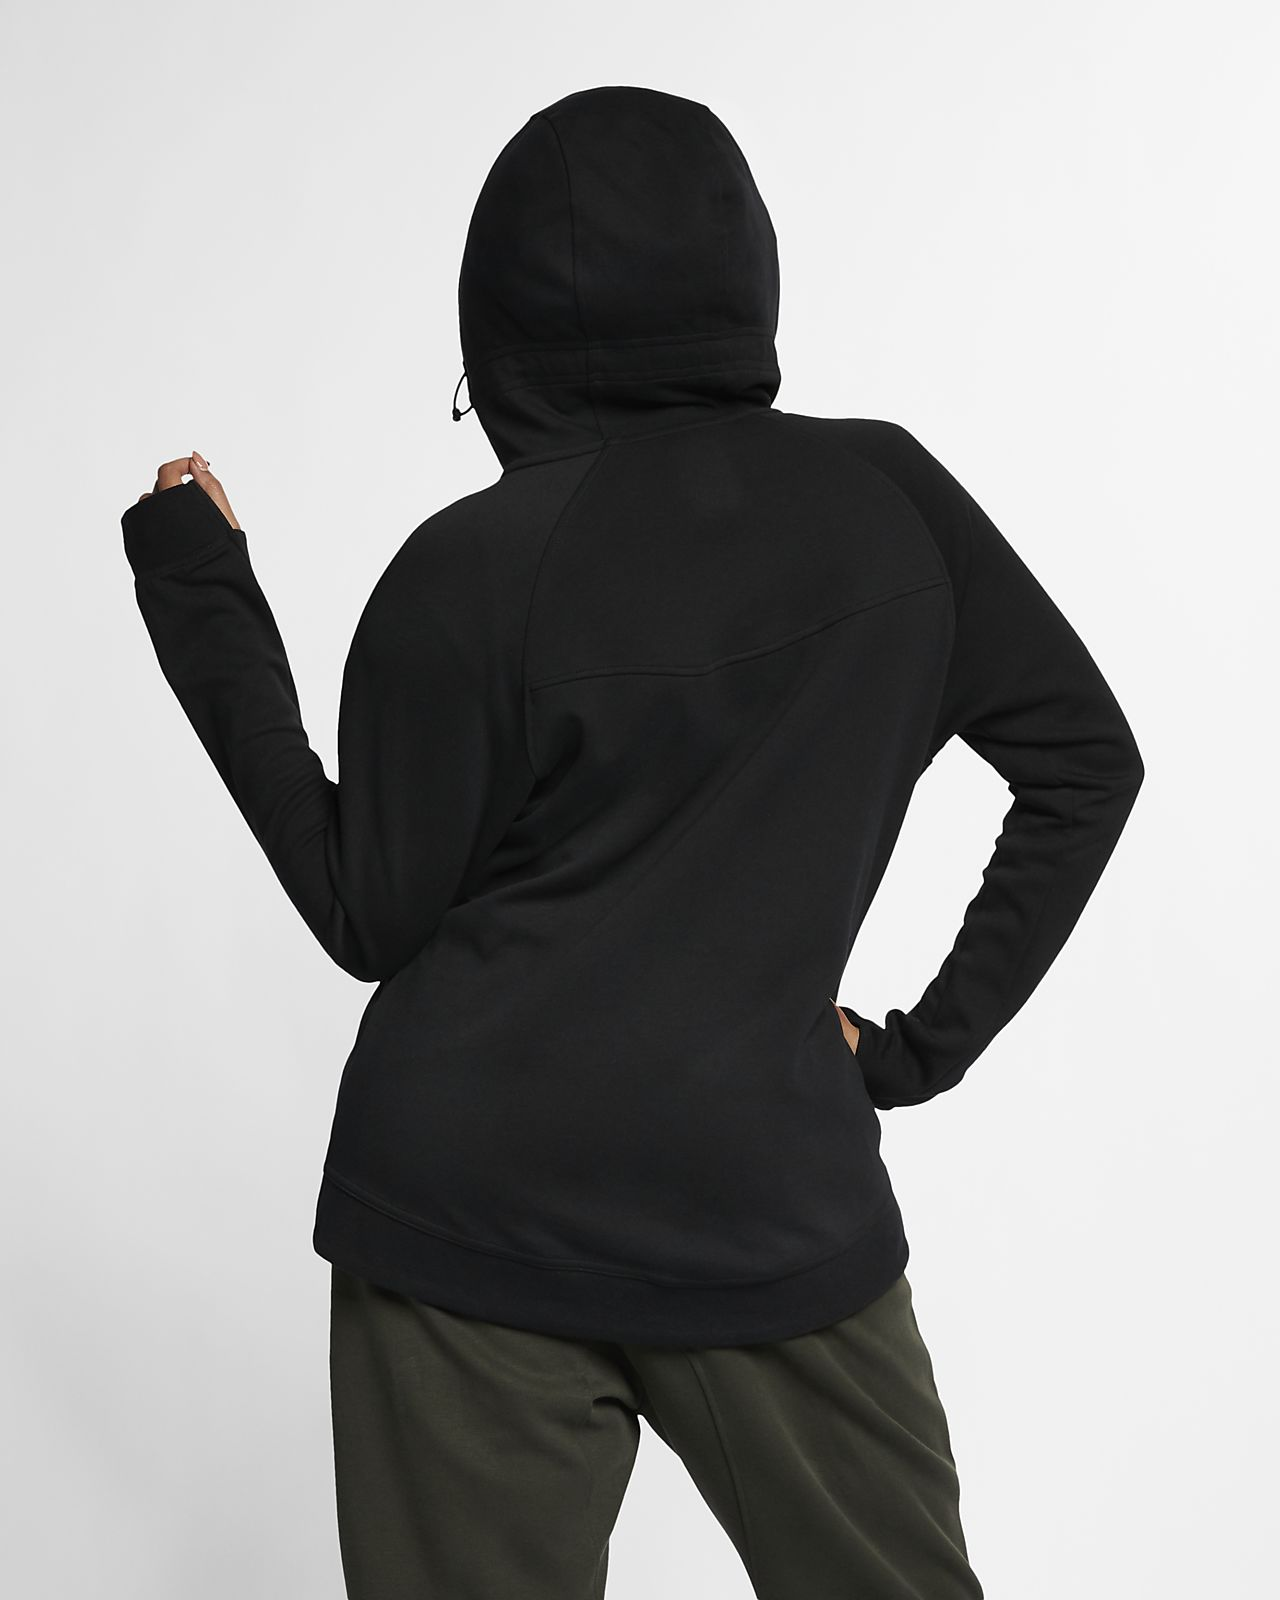 a0cf3a8ec Nike Sportswear Tech Fleece (Plus Size) Women s Full-Zip Hoodie ...